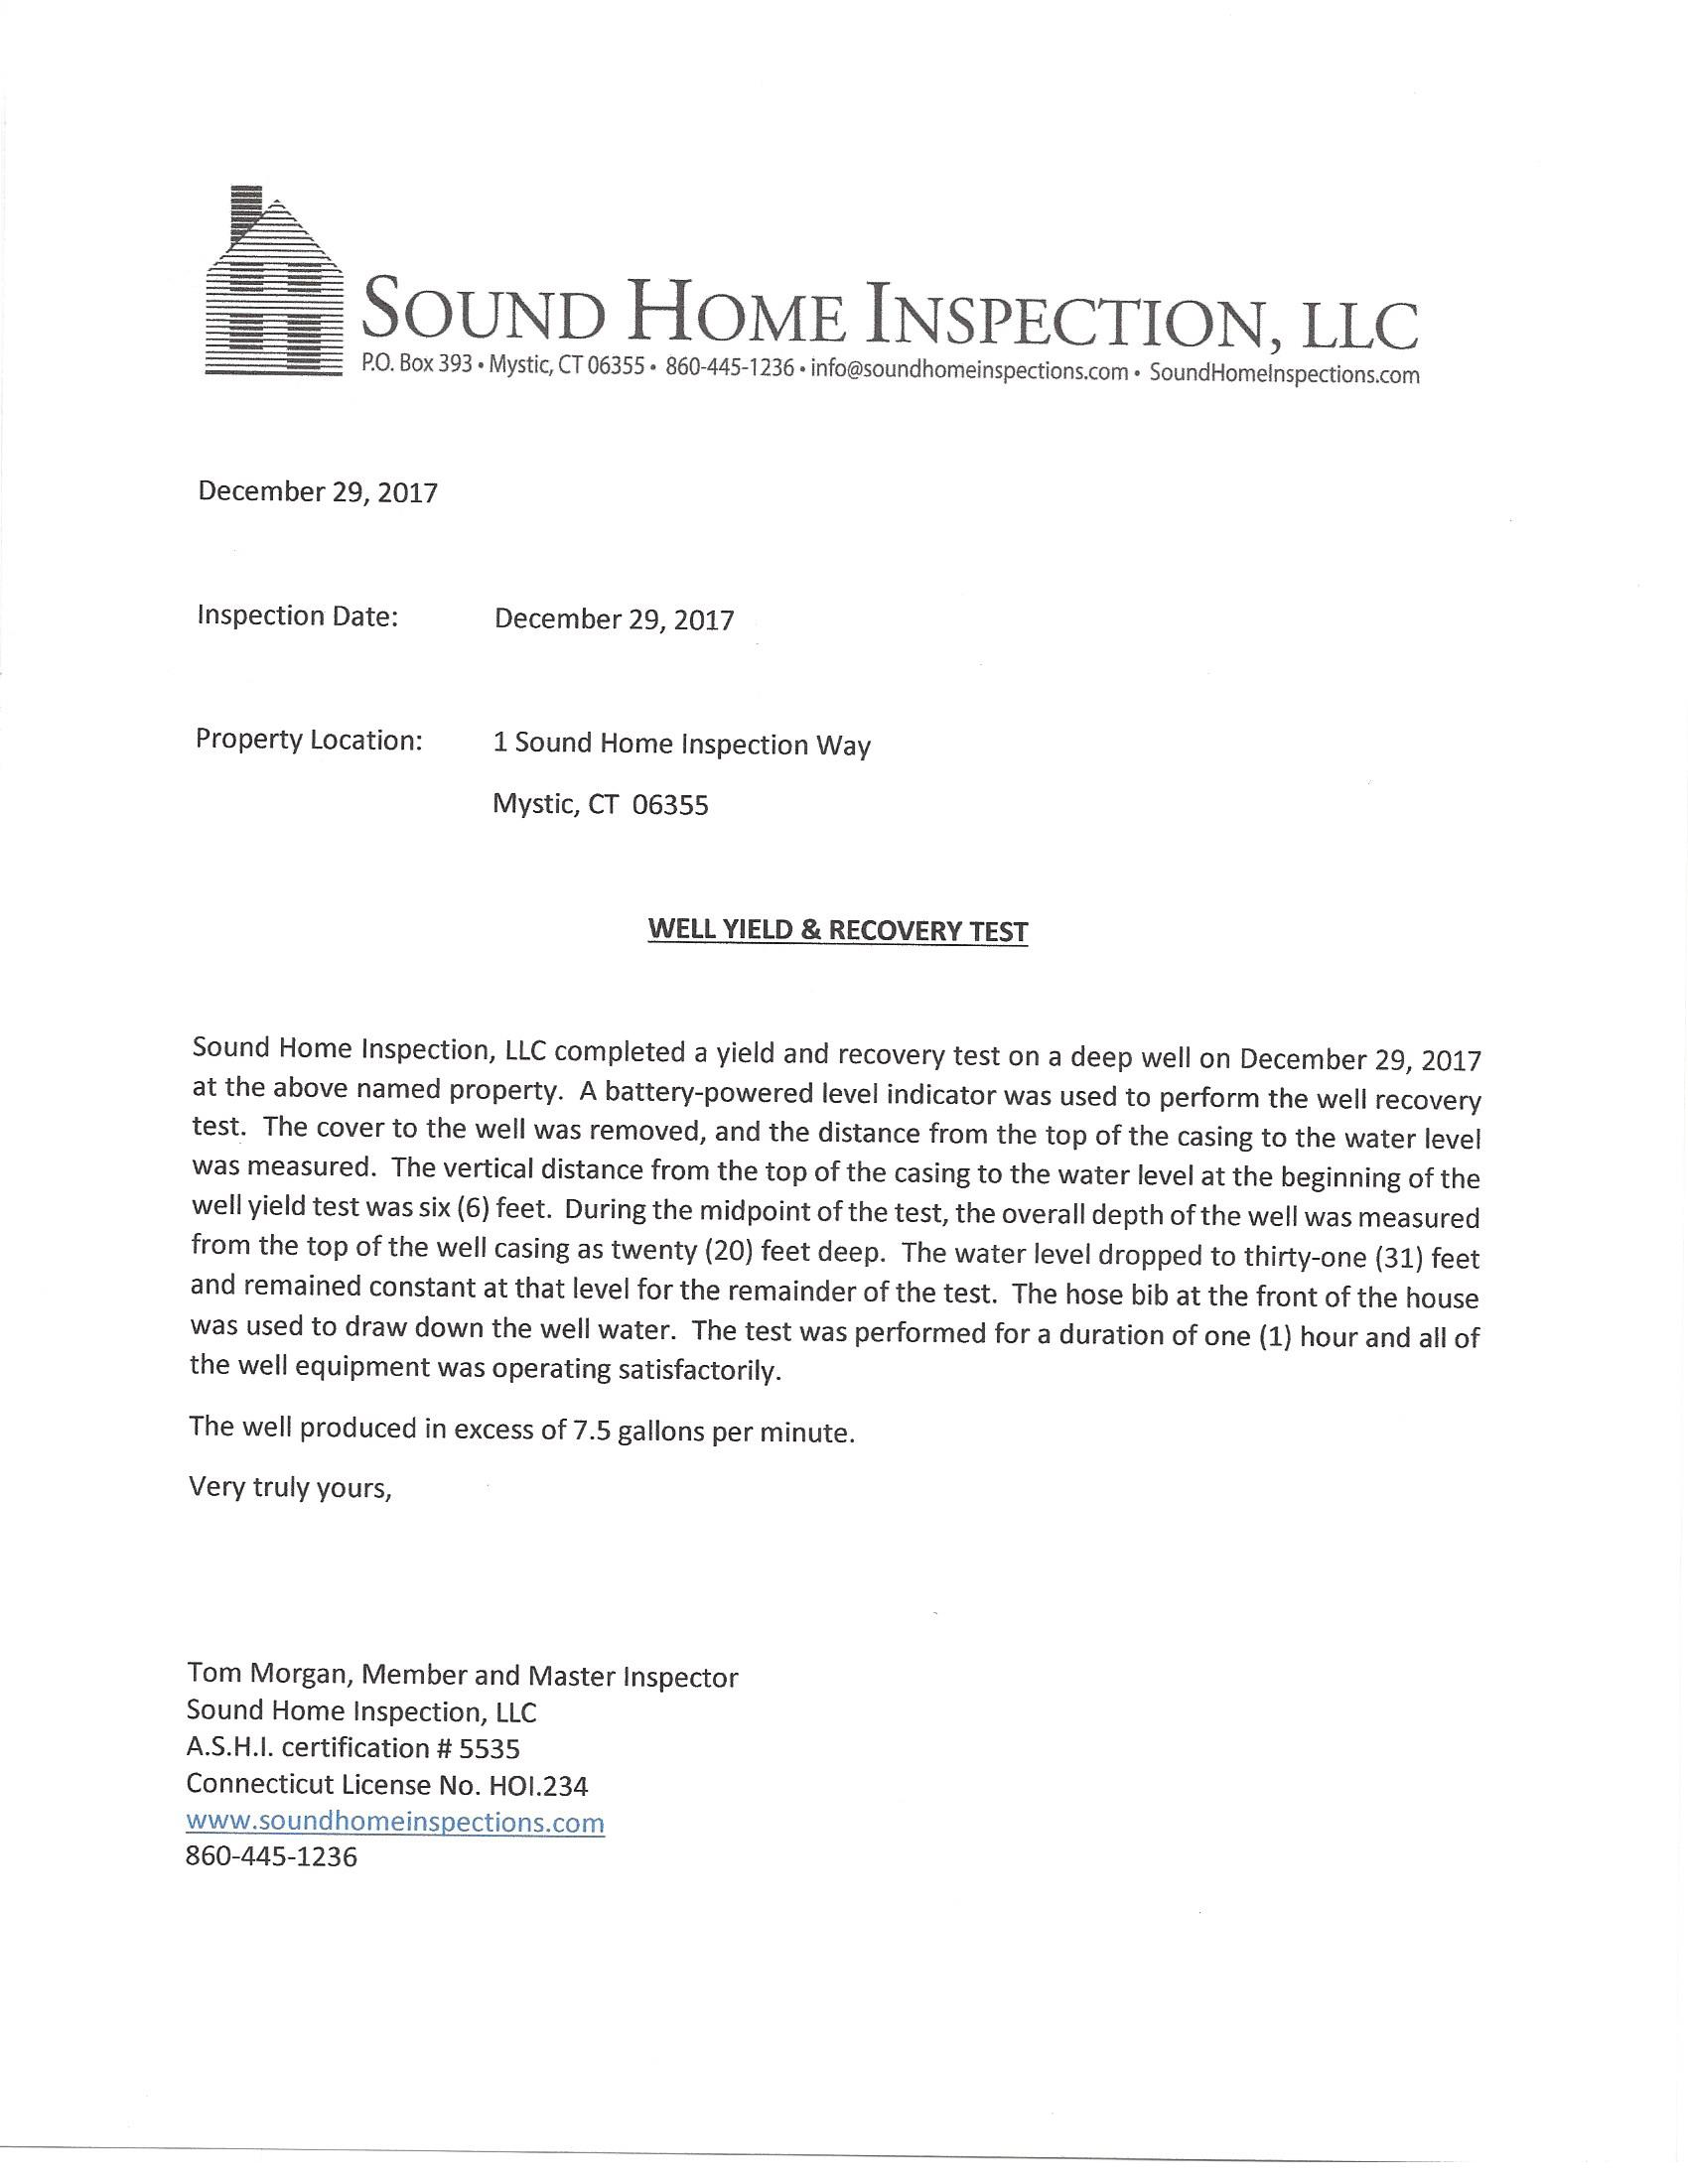 Sample Reports And Pictures  Sound Home Inspections Inc  Ct And Ri